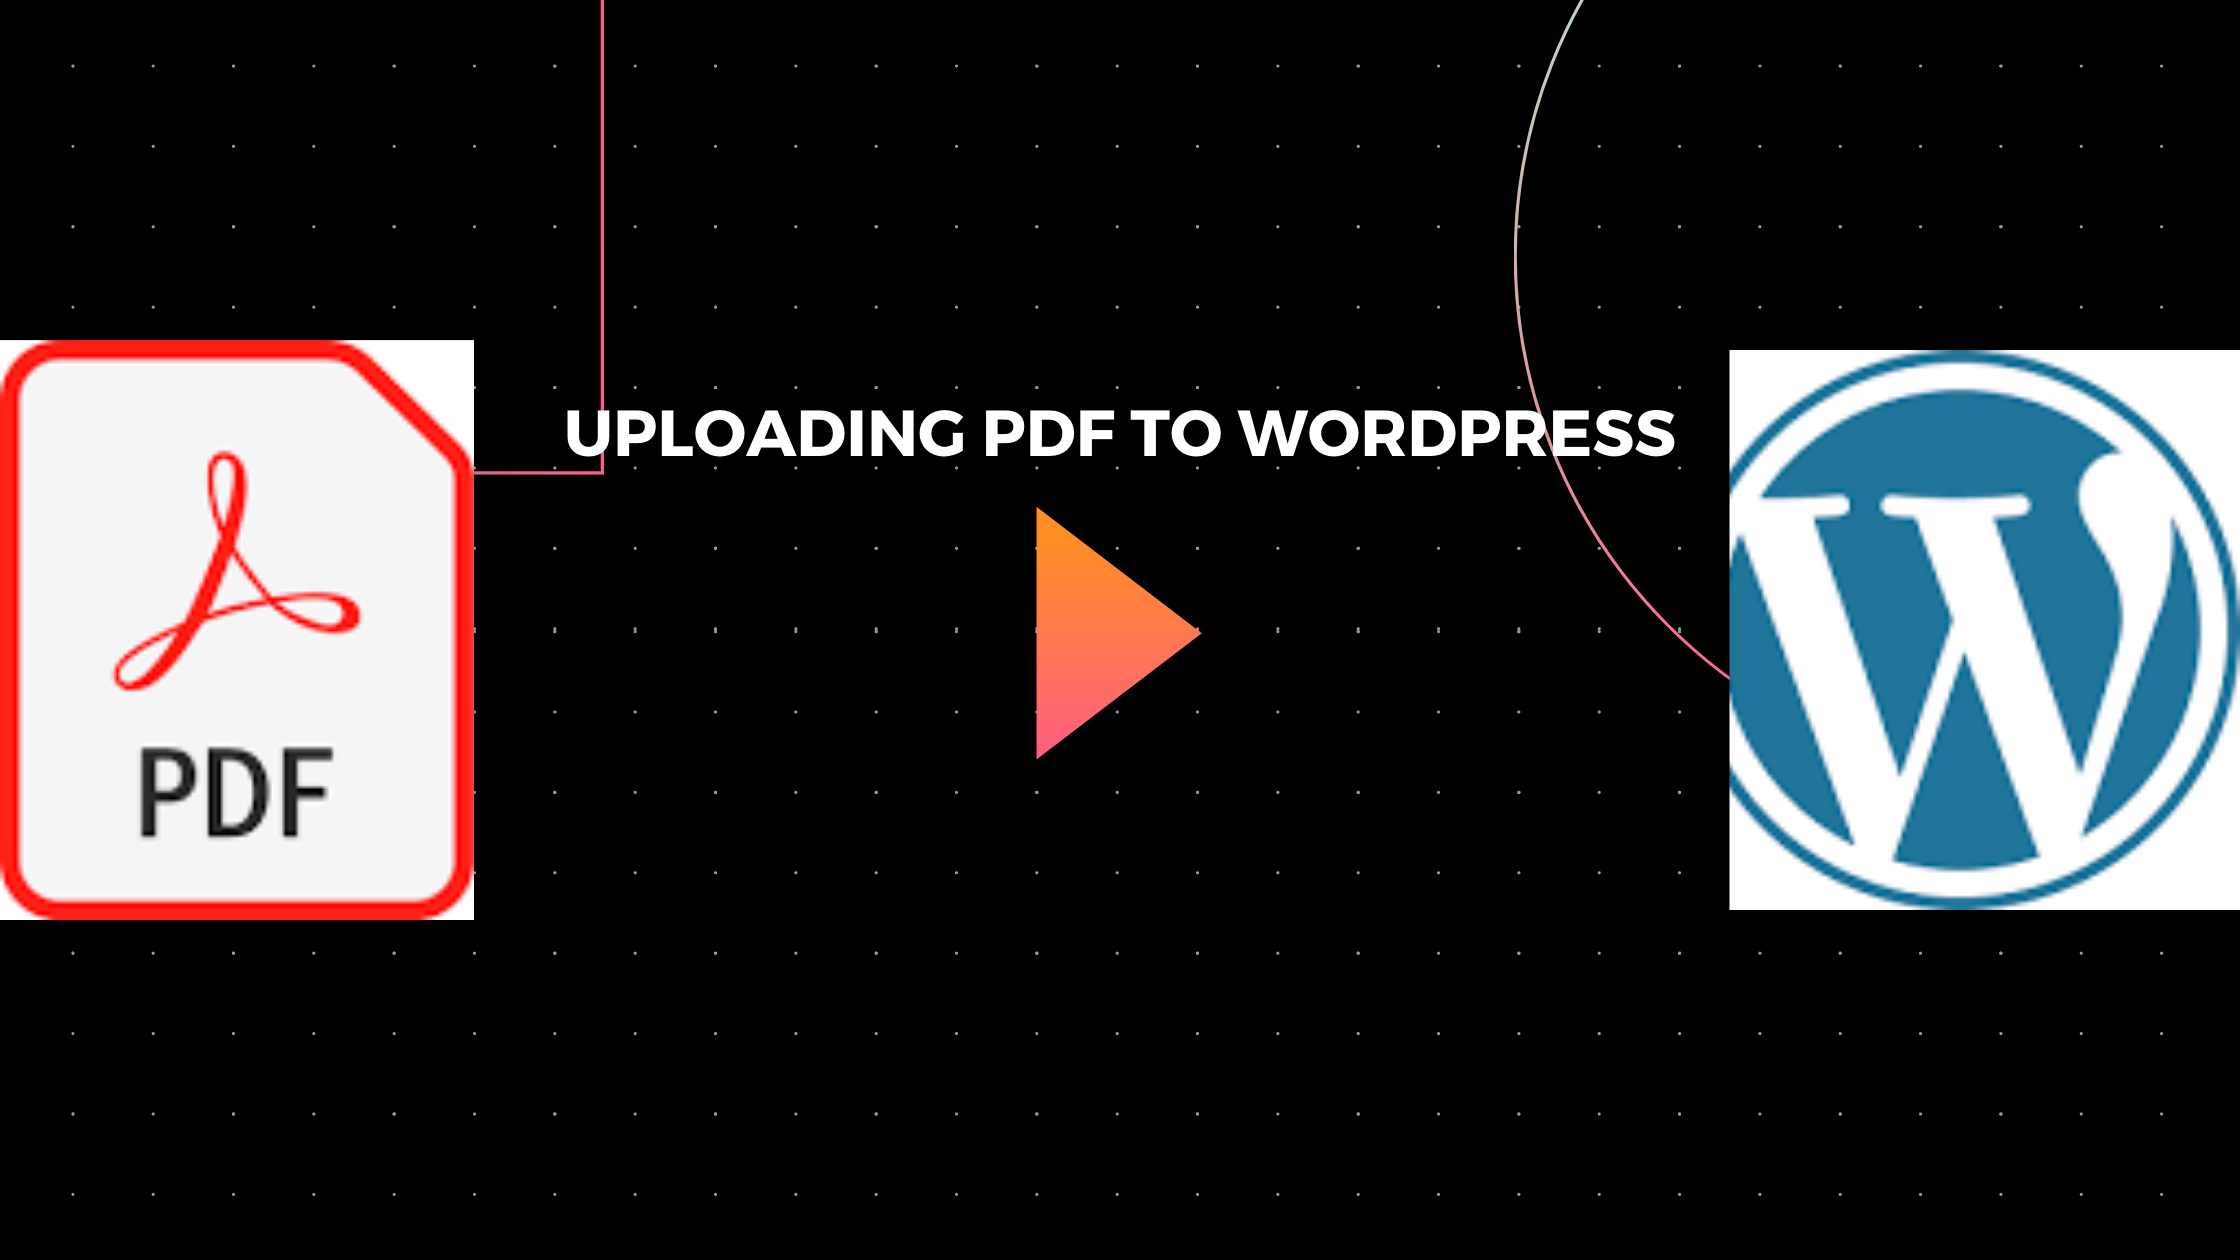 HOW TO UPLOAD OR ADD A PDF FILE TO A WORDPRESS WEBSITE